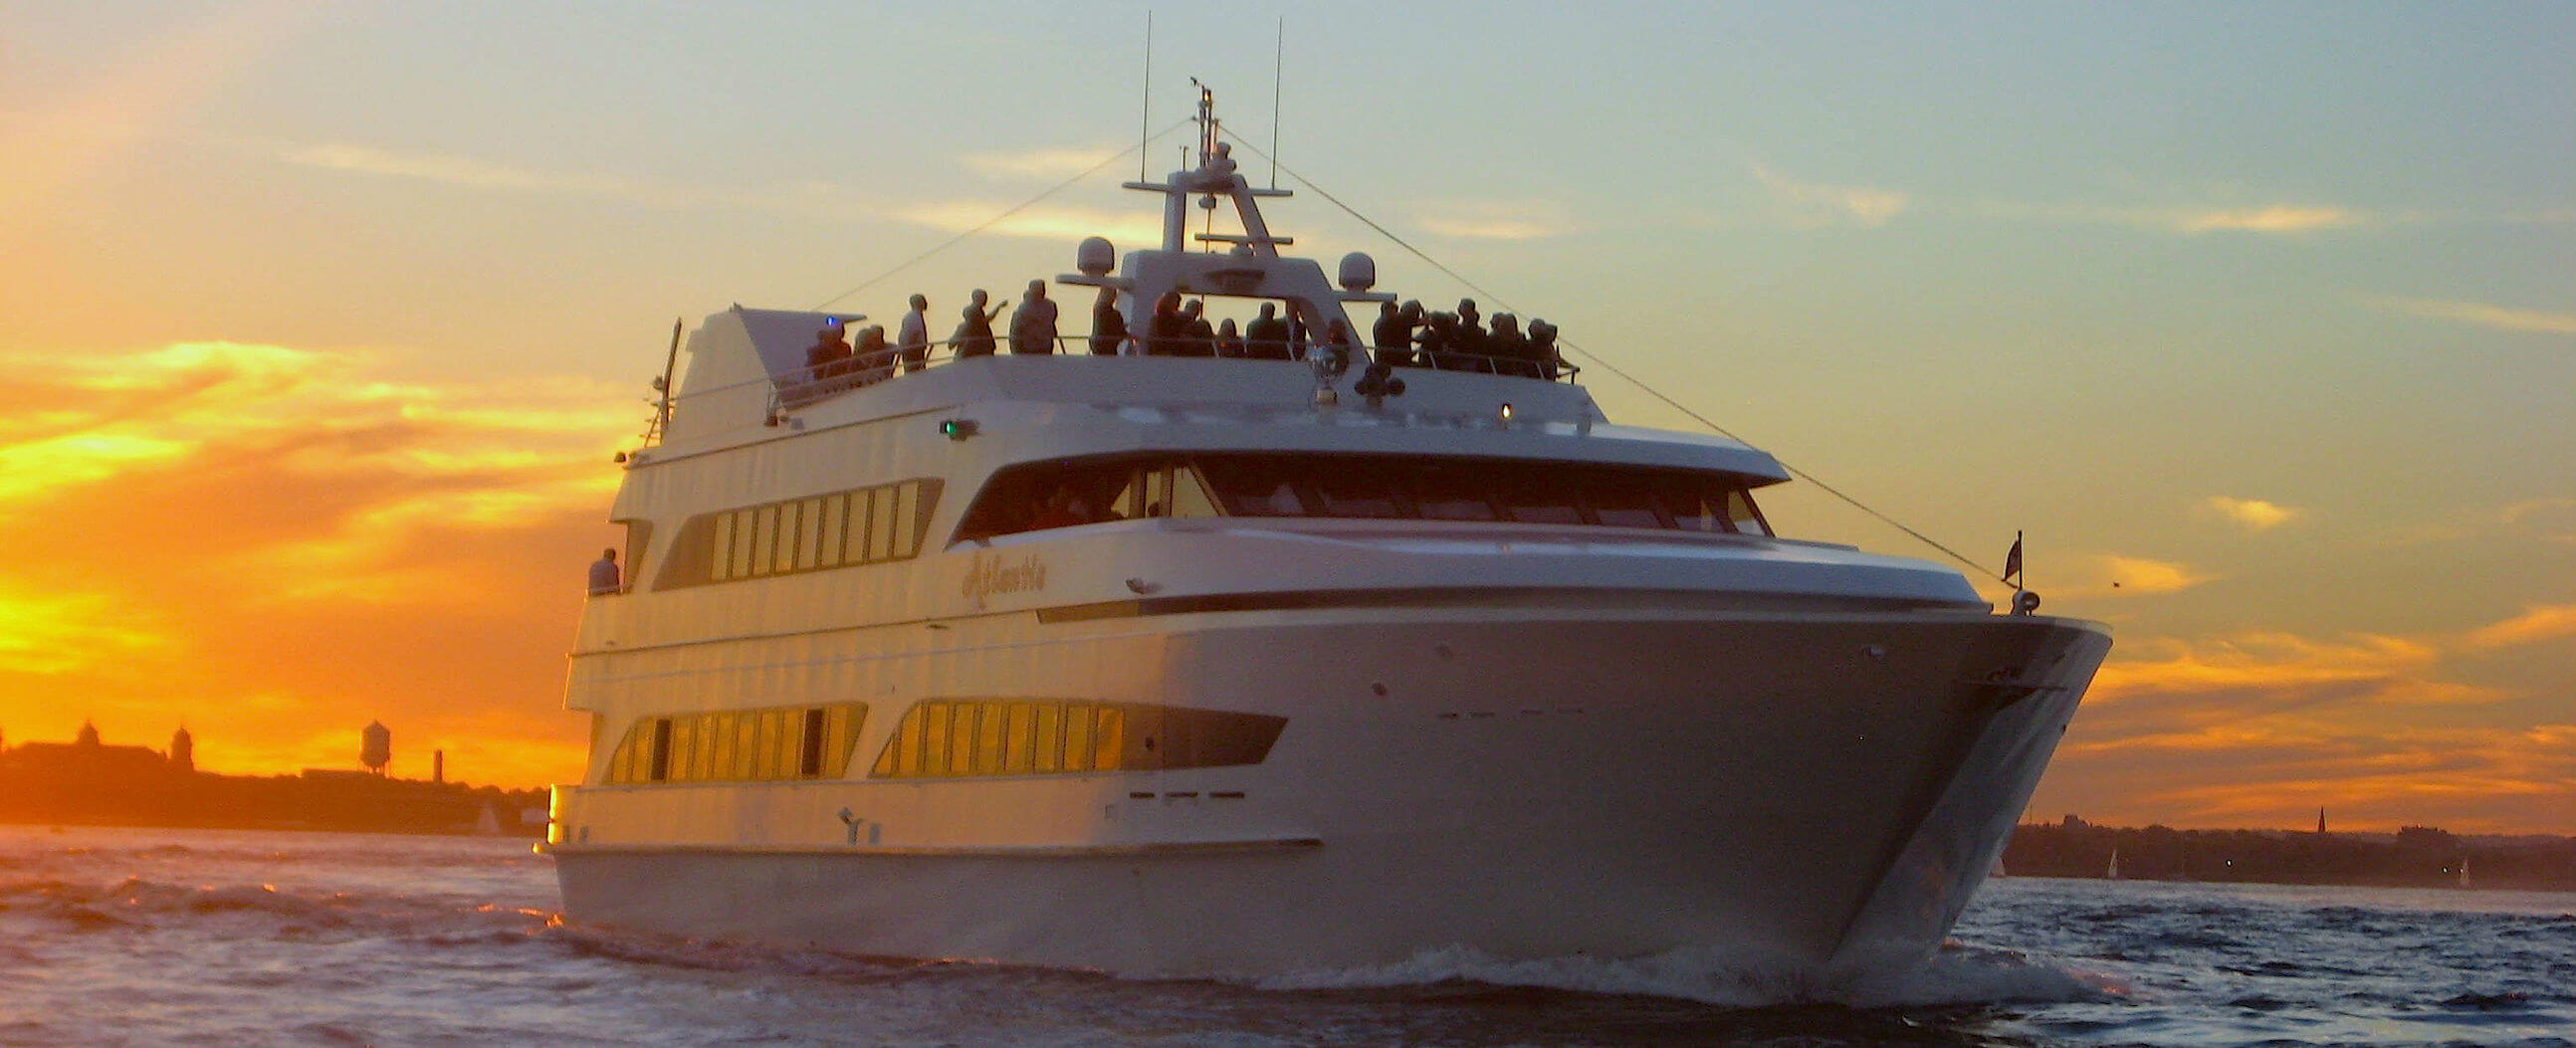 Private Events Yacht Charter Private Boat Party NYC